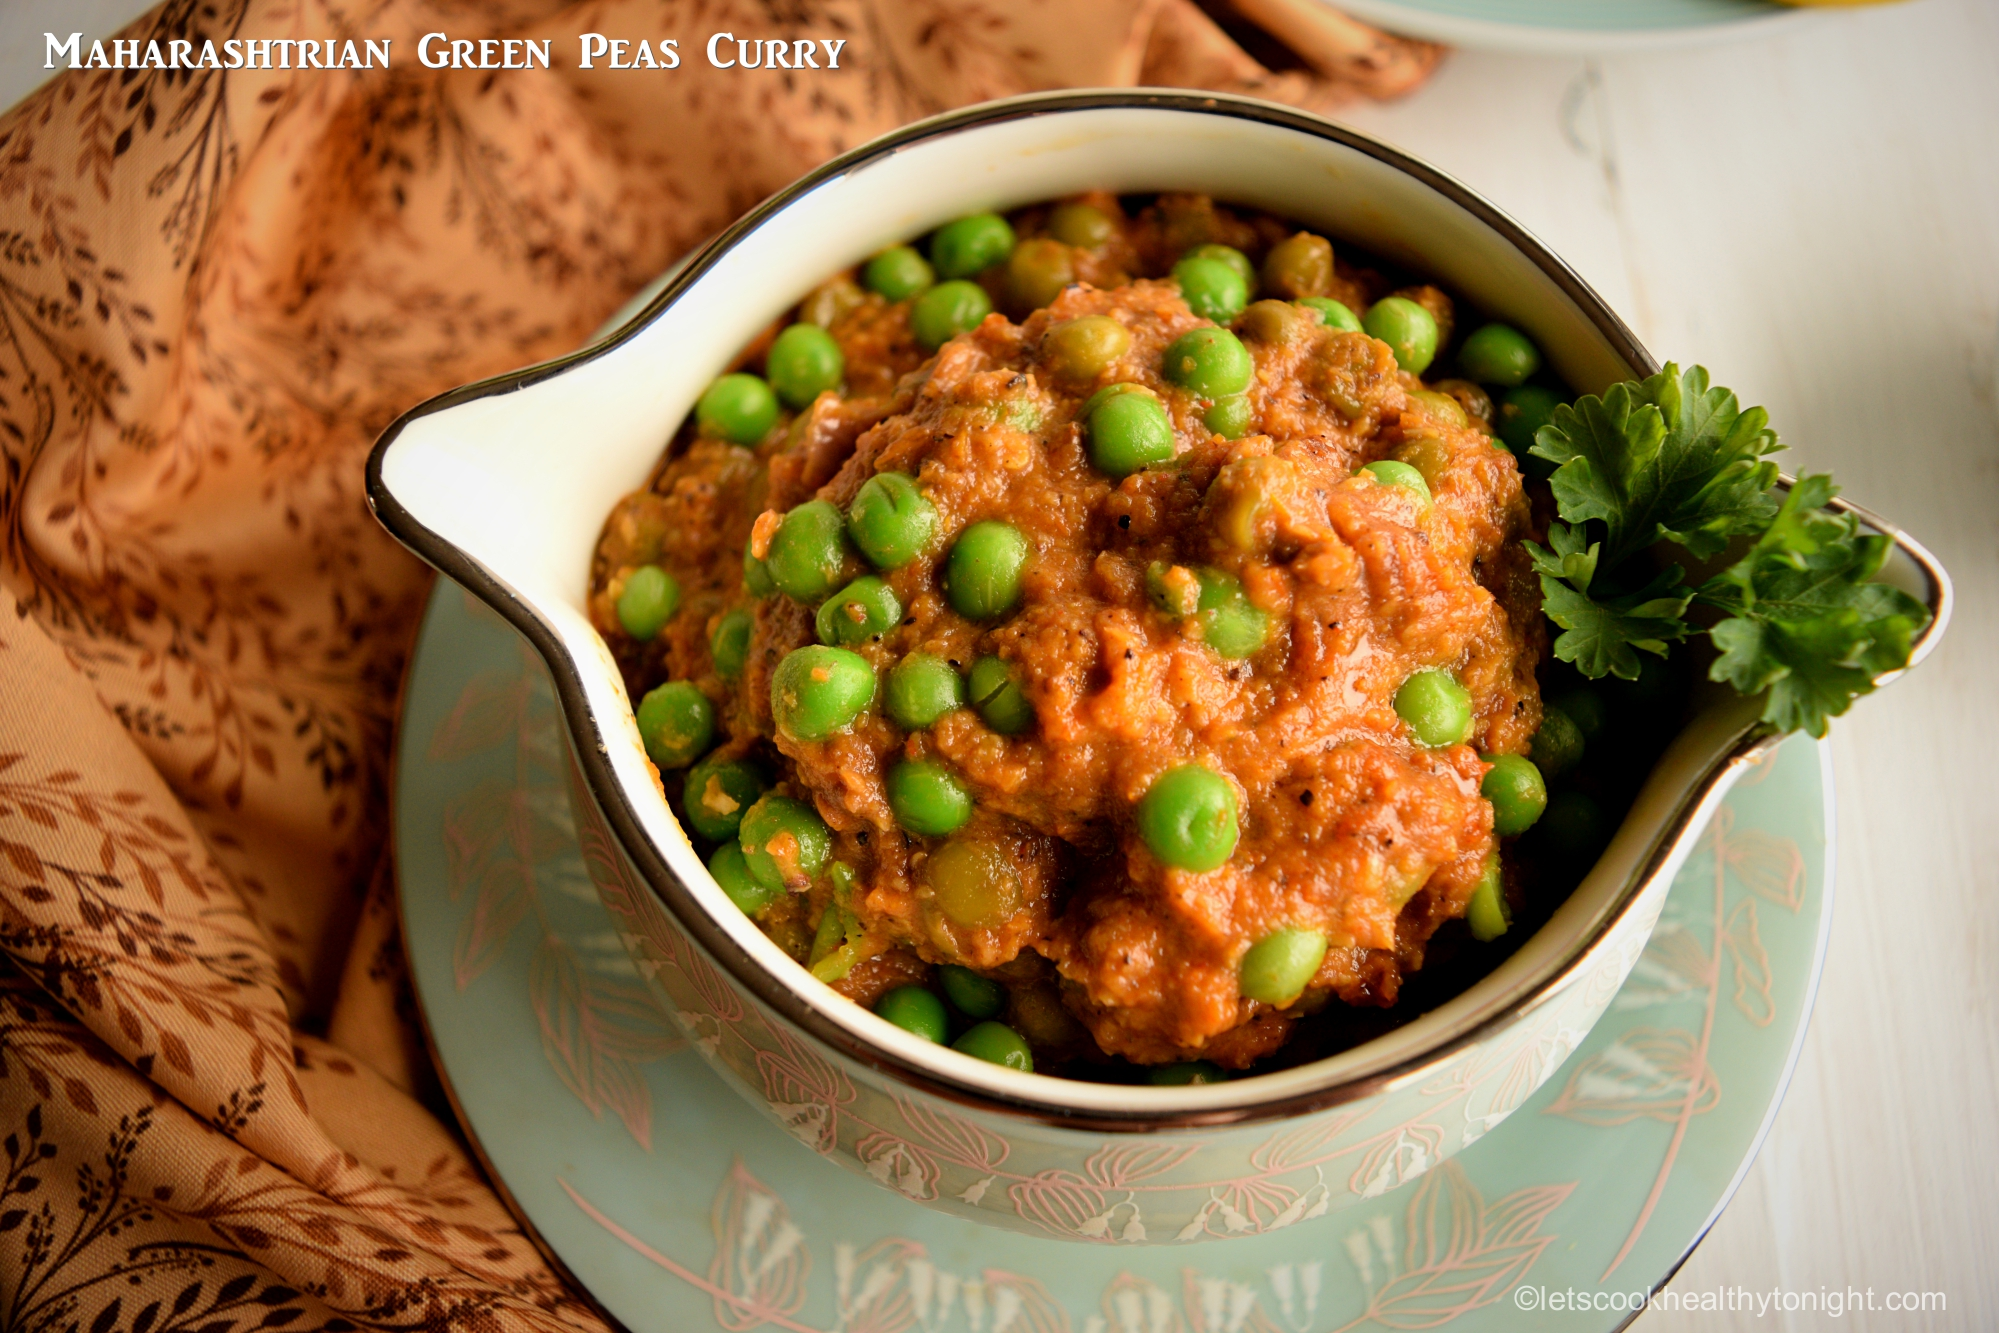 Maharashtrian green peas curry lets cook healthy tonight maharashtrian or marathi cuisine is the cuisine of the marathi people from the state of maharashtra in india the cuisines of maharashtra has its own forumfinder Image collections